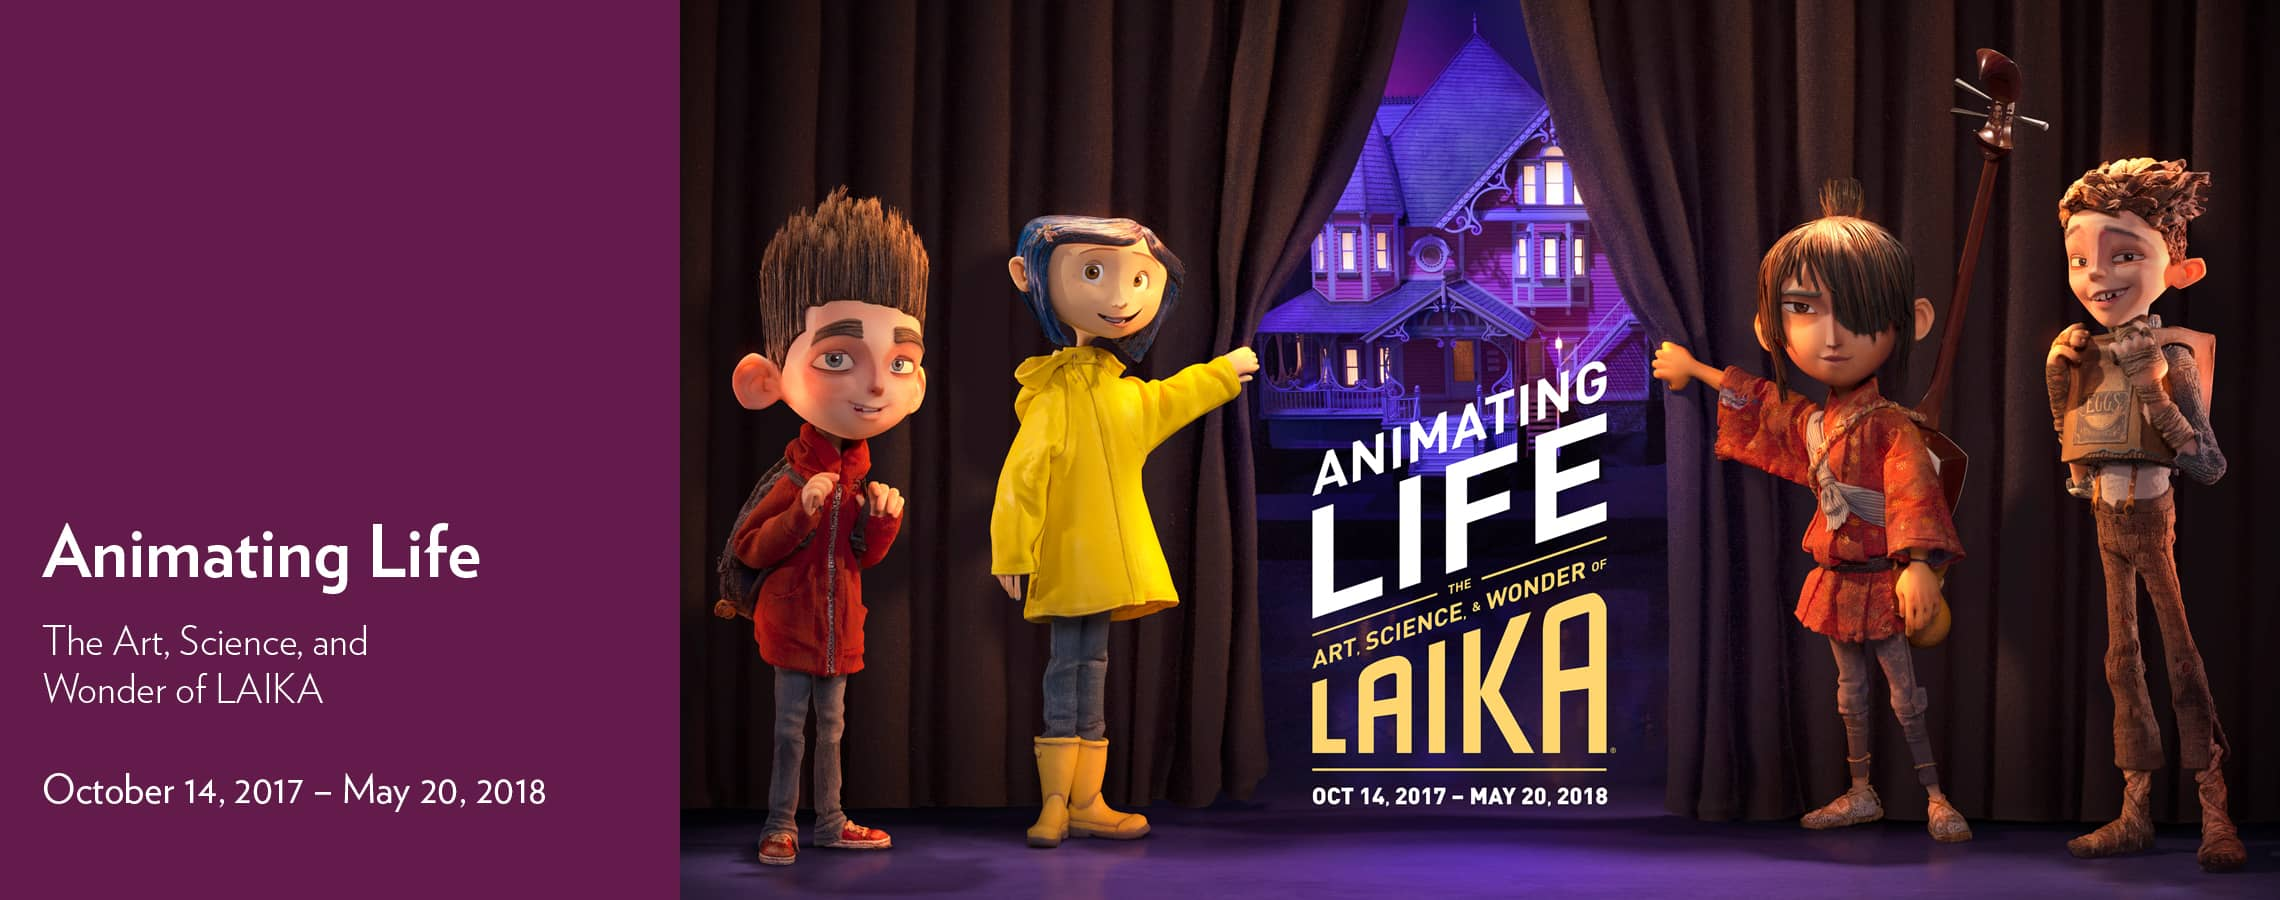 Animating Life: The Art, Science, and Wonder of LAIKA – Oct 14, 2017 – May 20, 2018